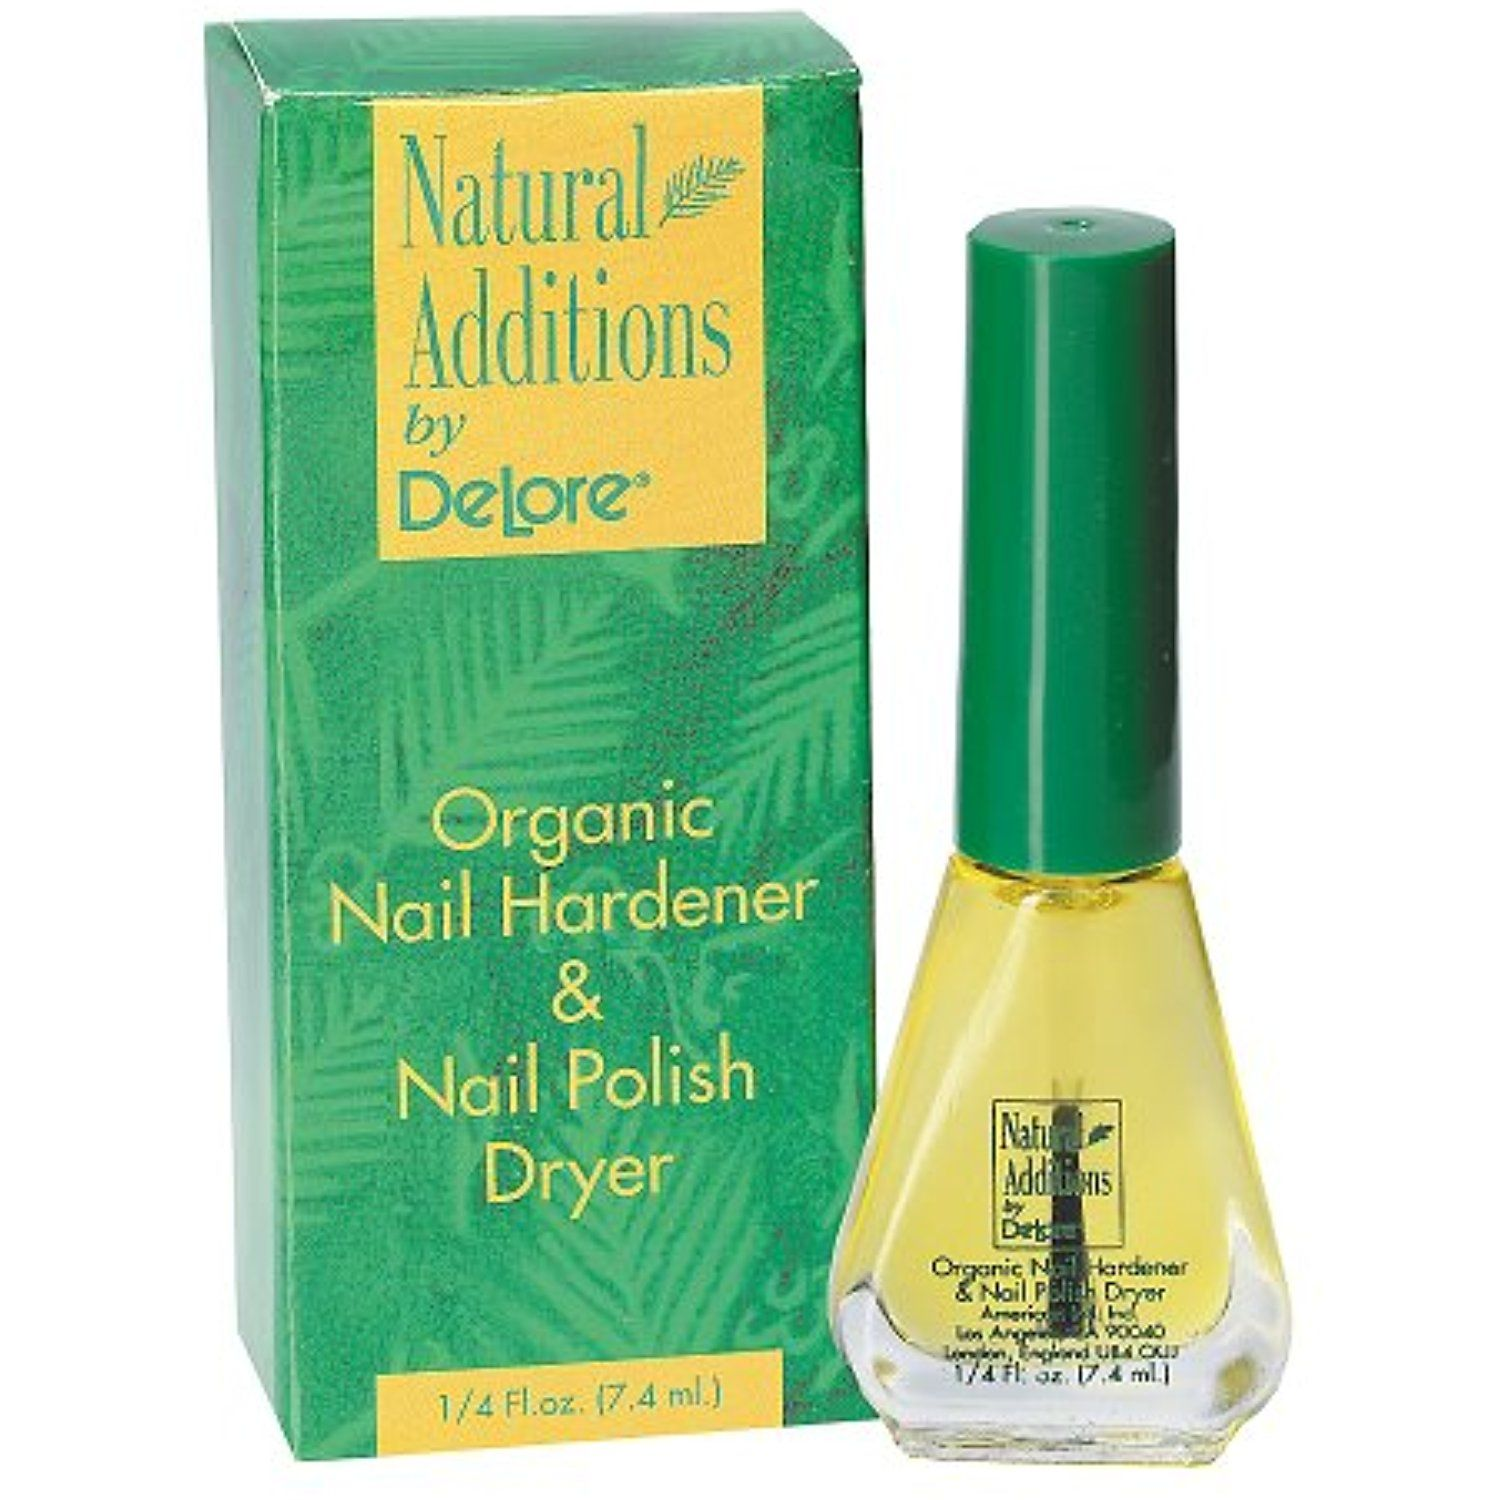 Natural Additions Nail Hardener/Dryer >>> Click image to review more ...